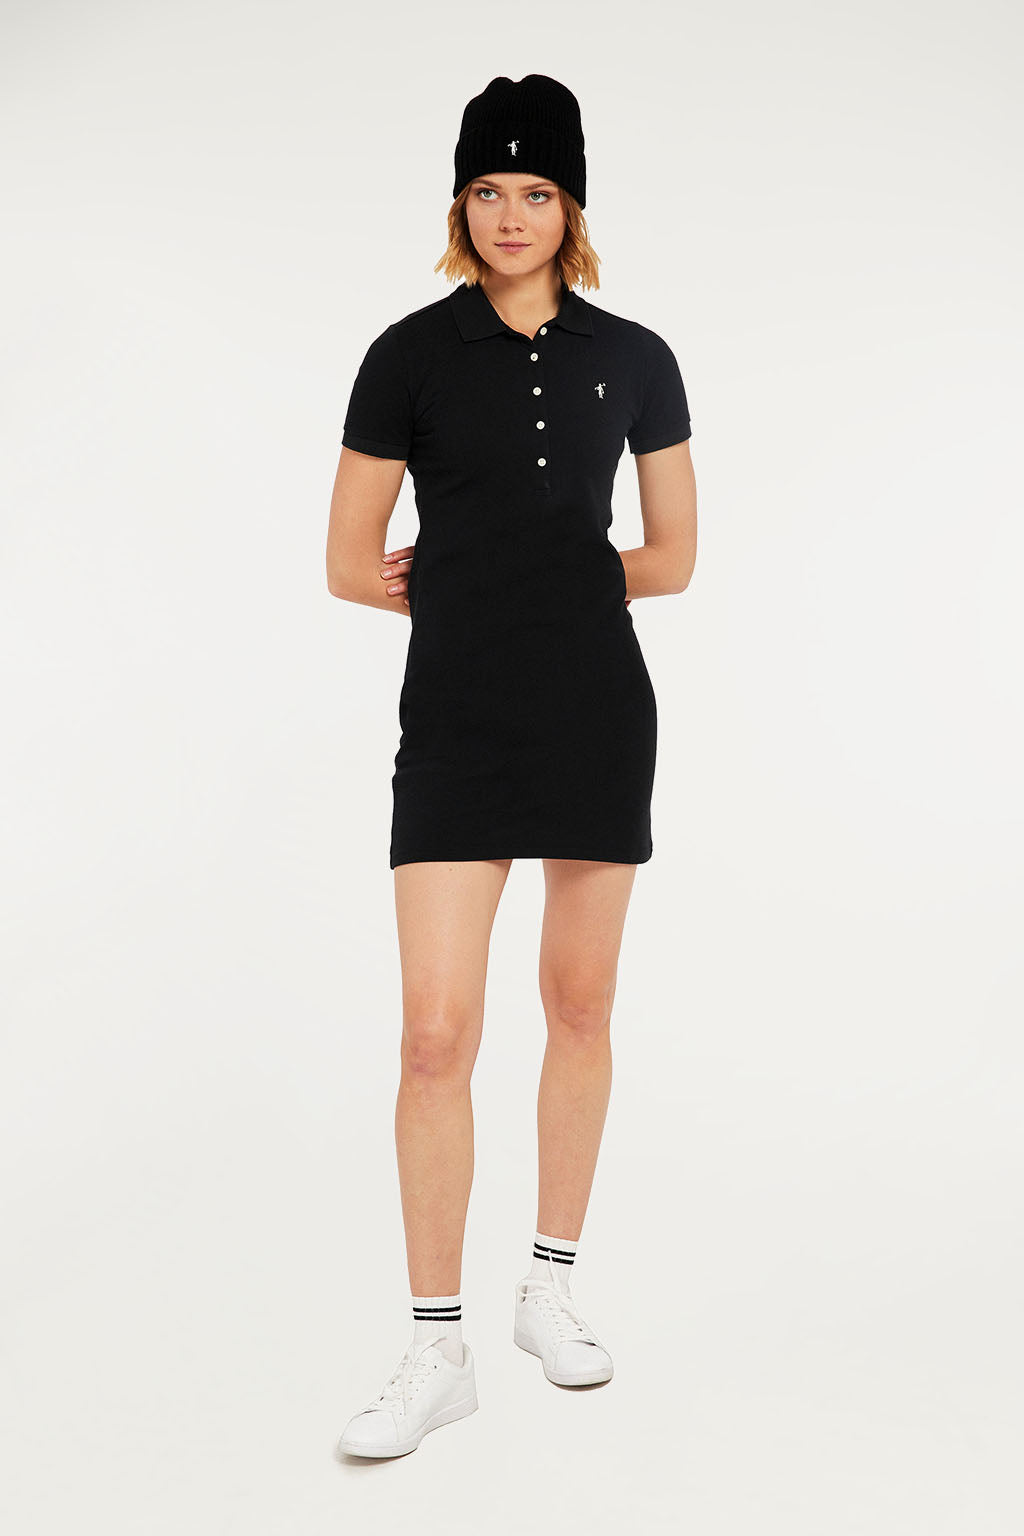 Black polo dress